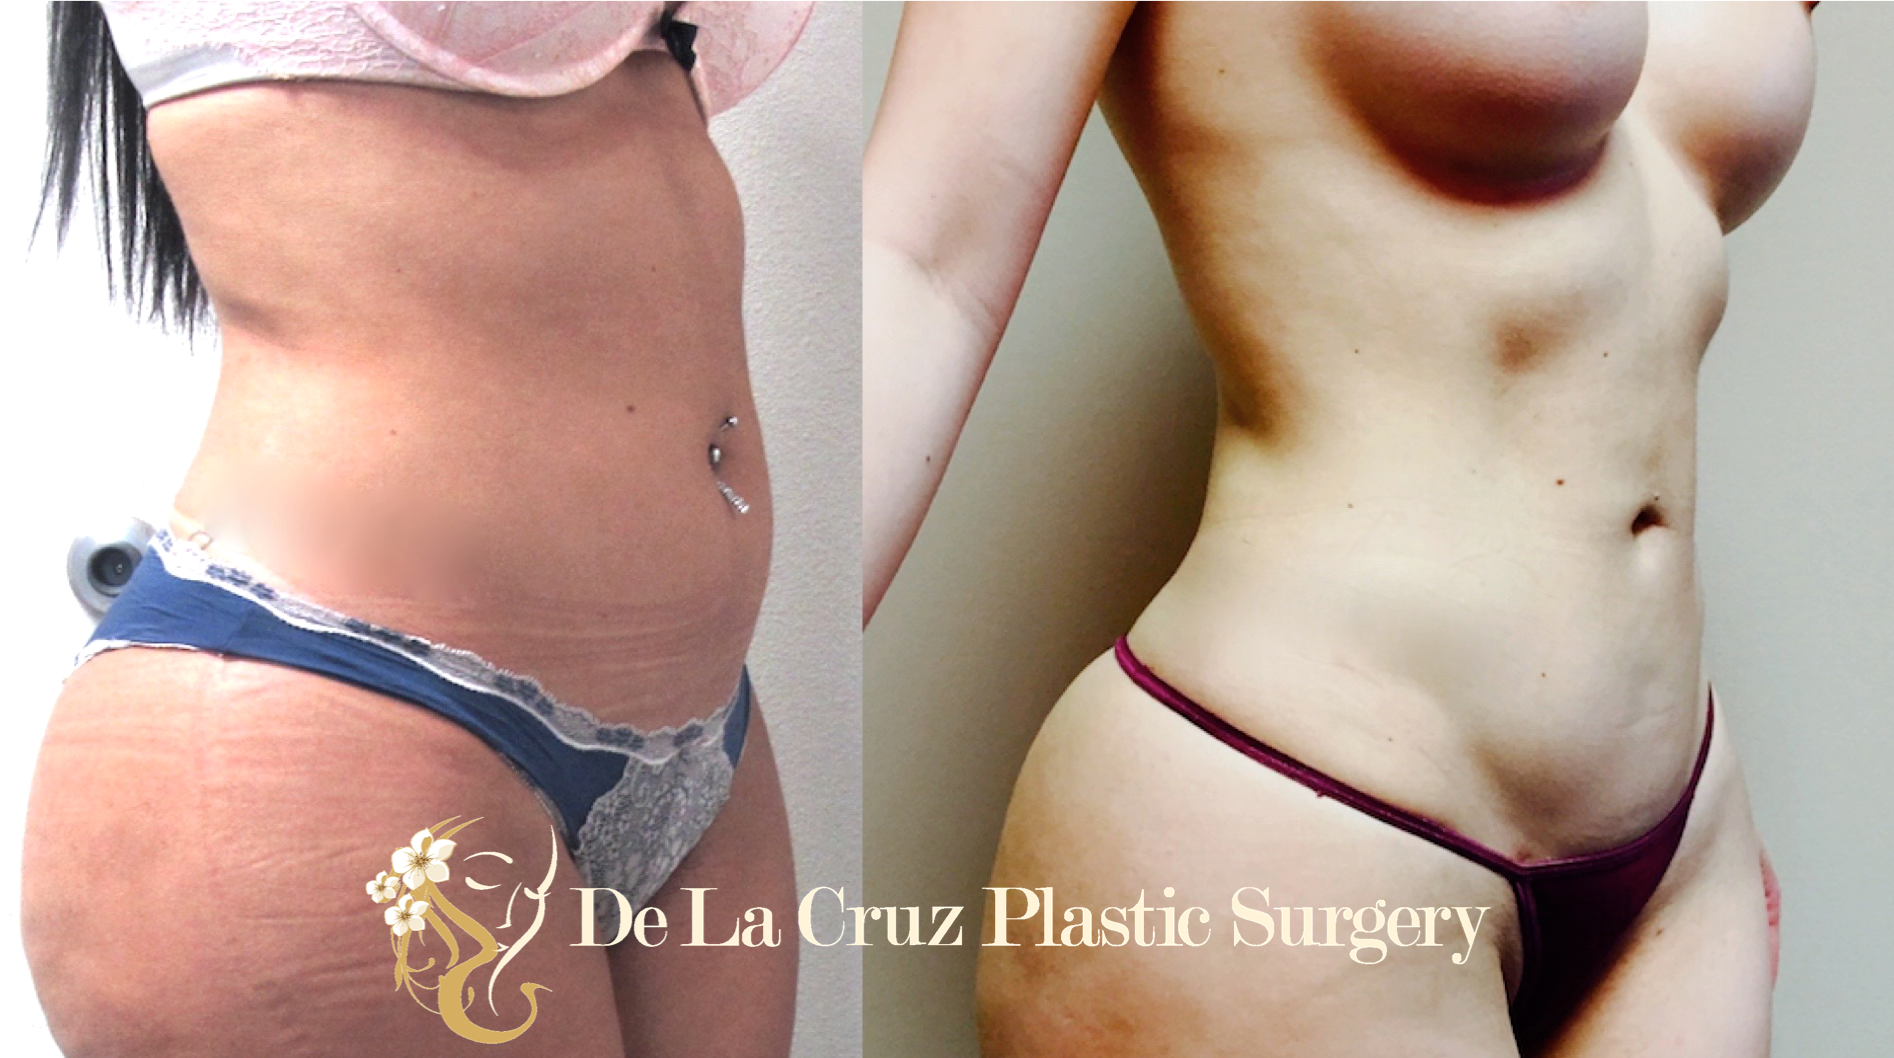 4D VASER Liposuction performed by Dr. Emmanuel De La Cruz of Houston, Texas